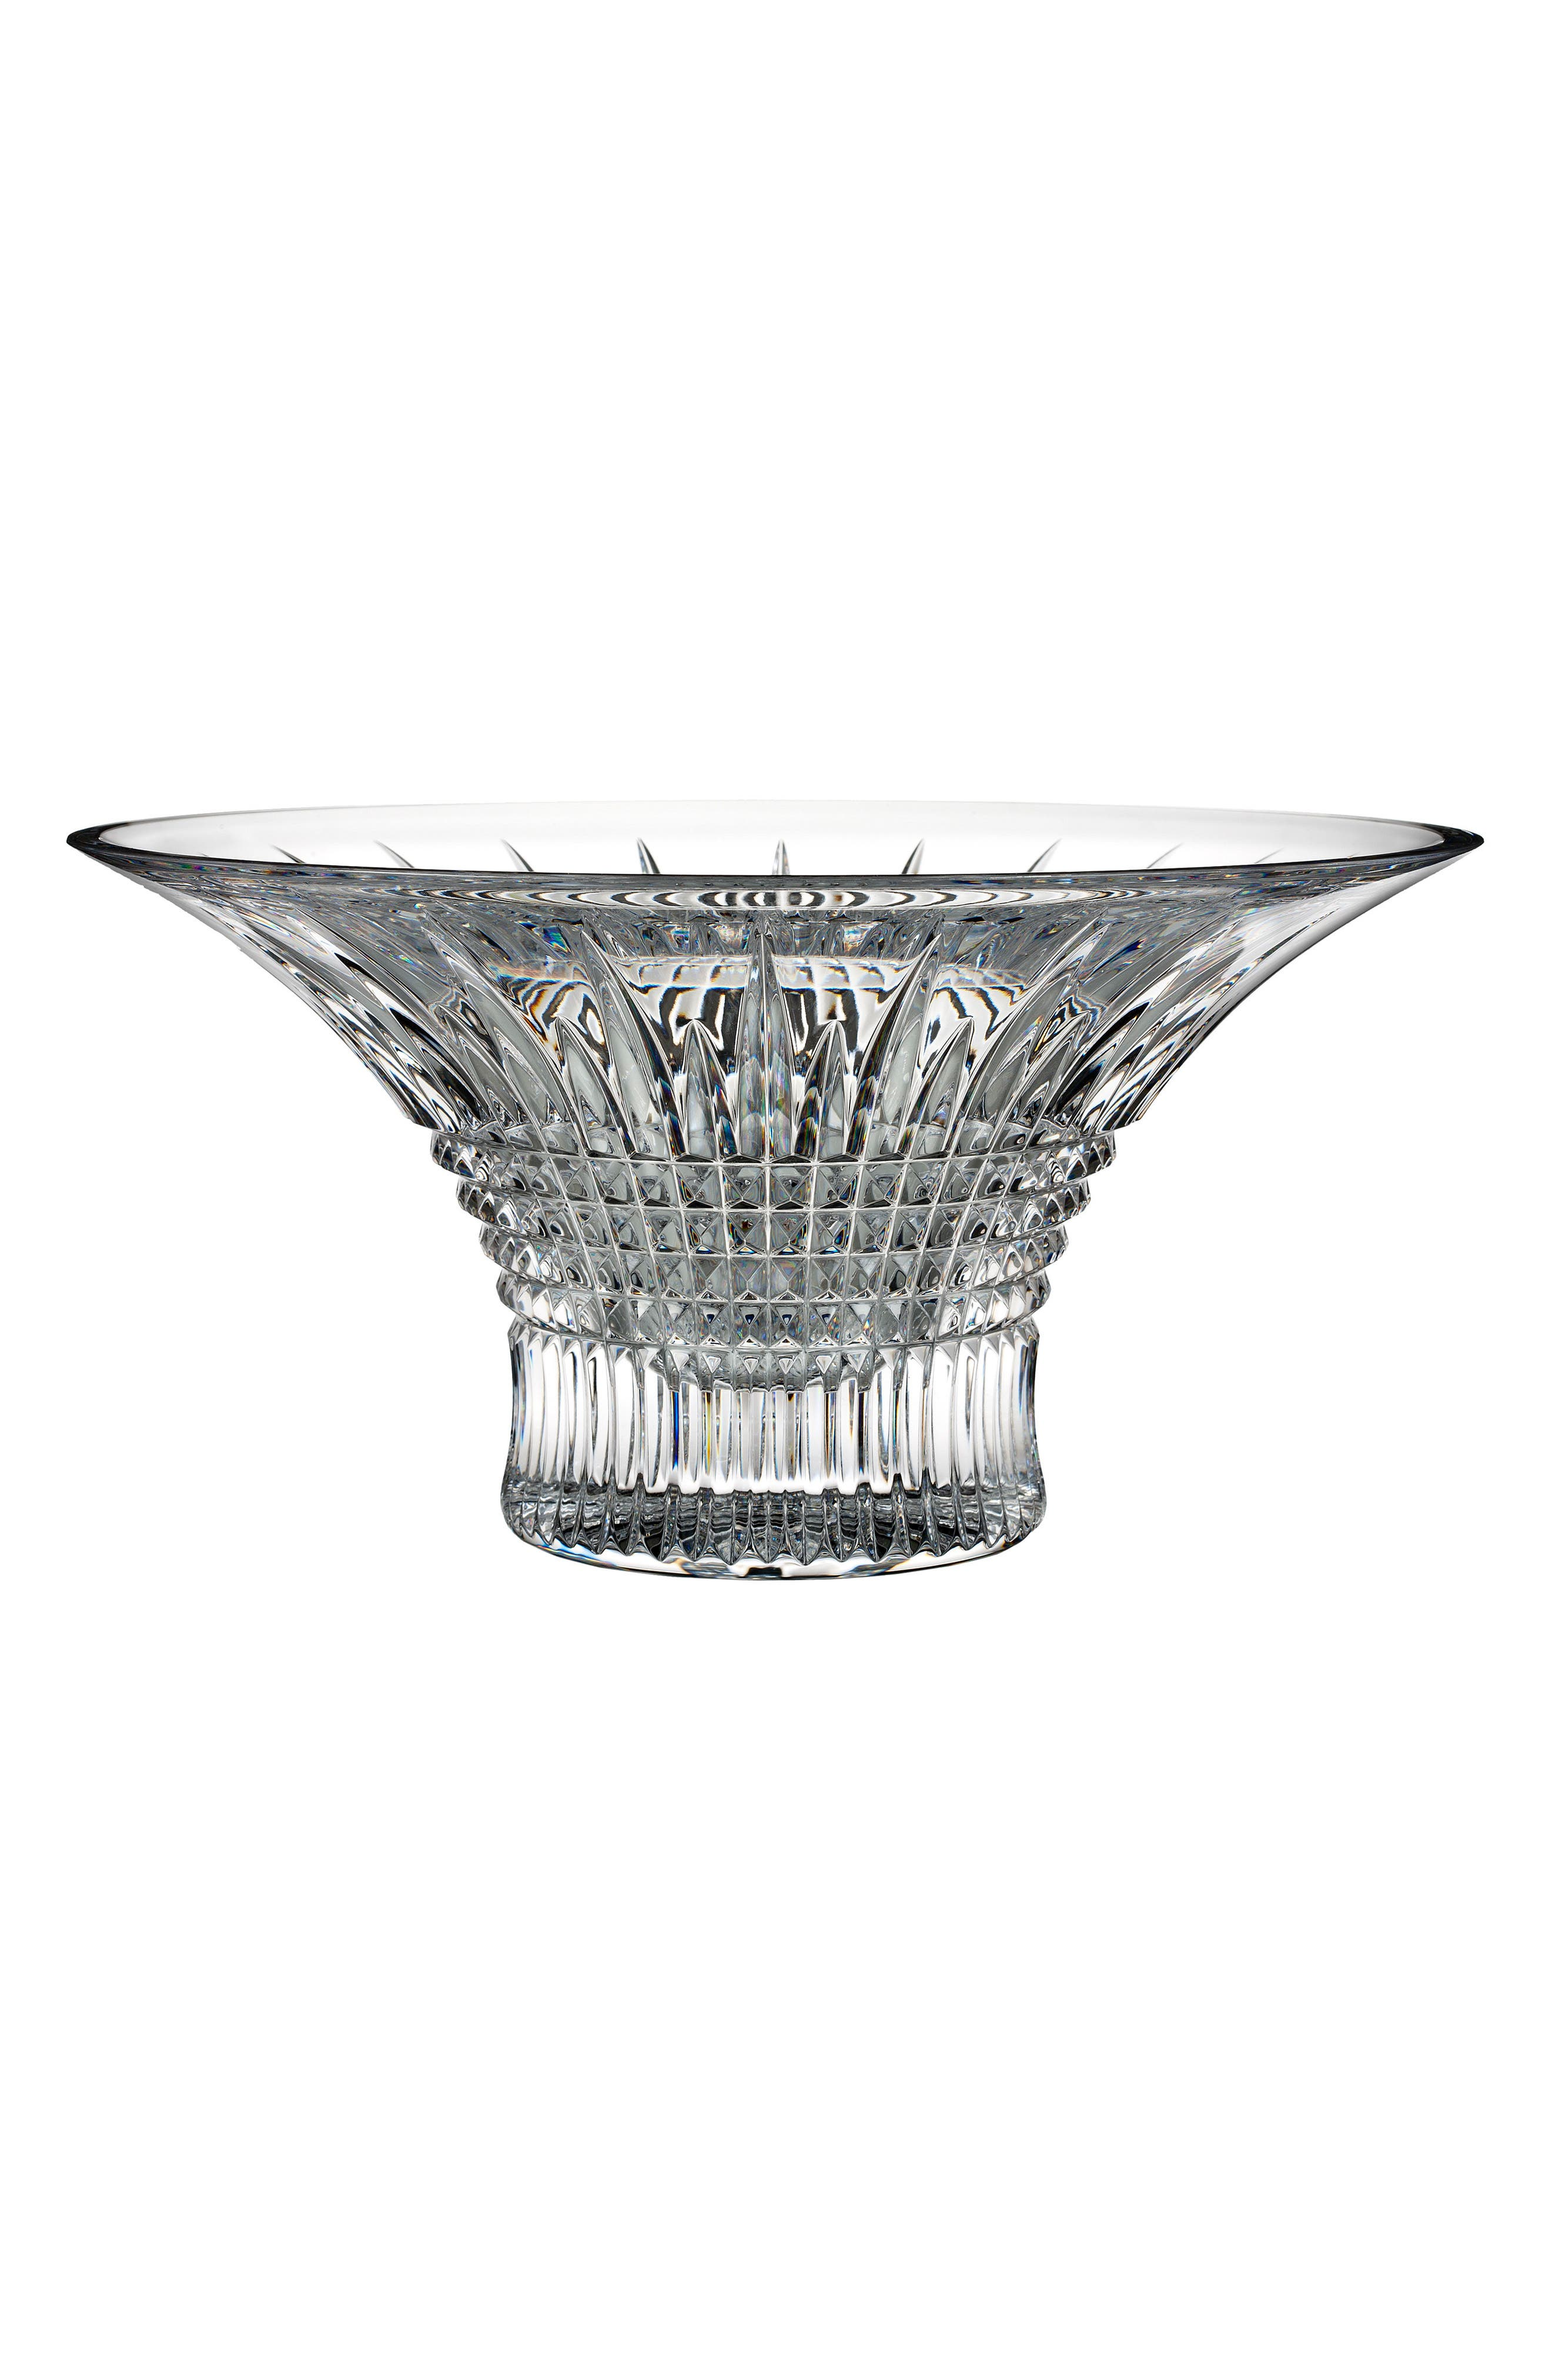 Main Image - Waterford Lismore Diamond Lead Crystal Bowl